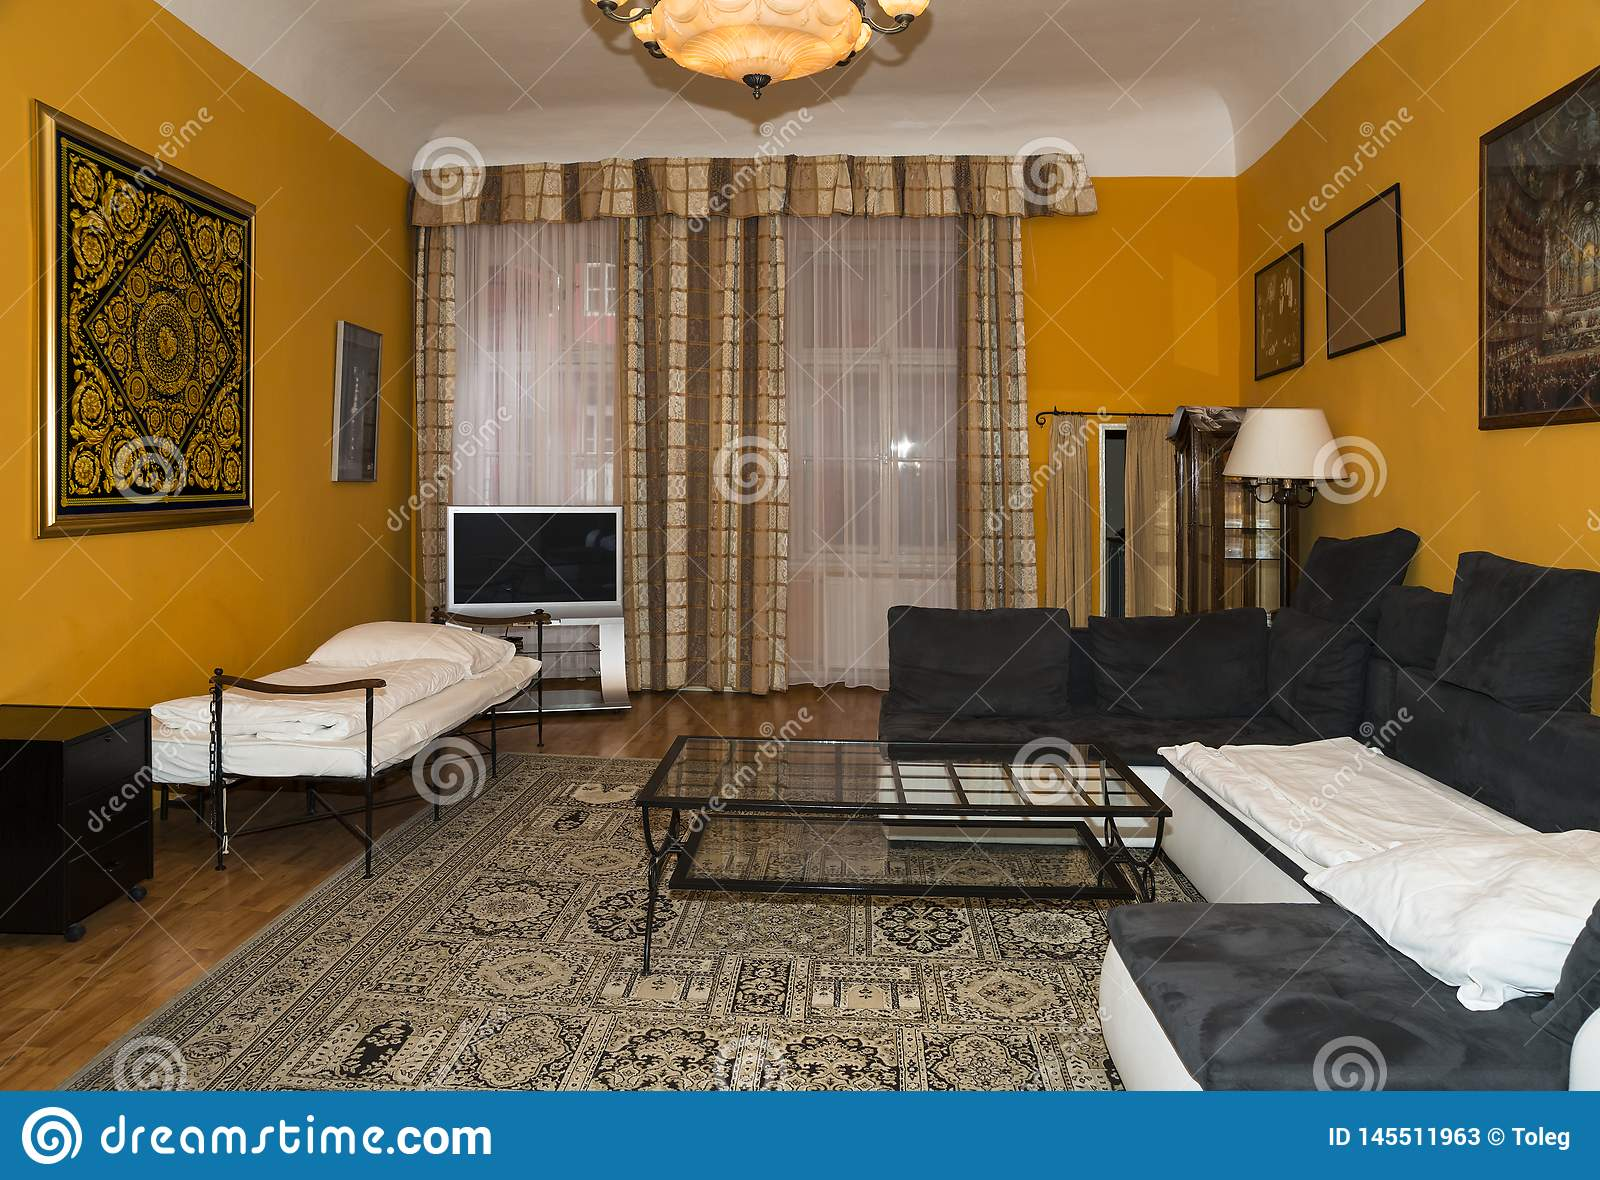 Modern Living Room Design With Yellow Walls Carpet On The Floor And Curtains On The Windows Editorial Stock Photo Image Of Rest Soft 145511963